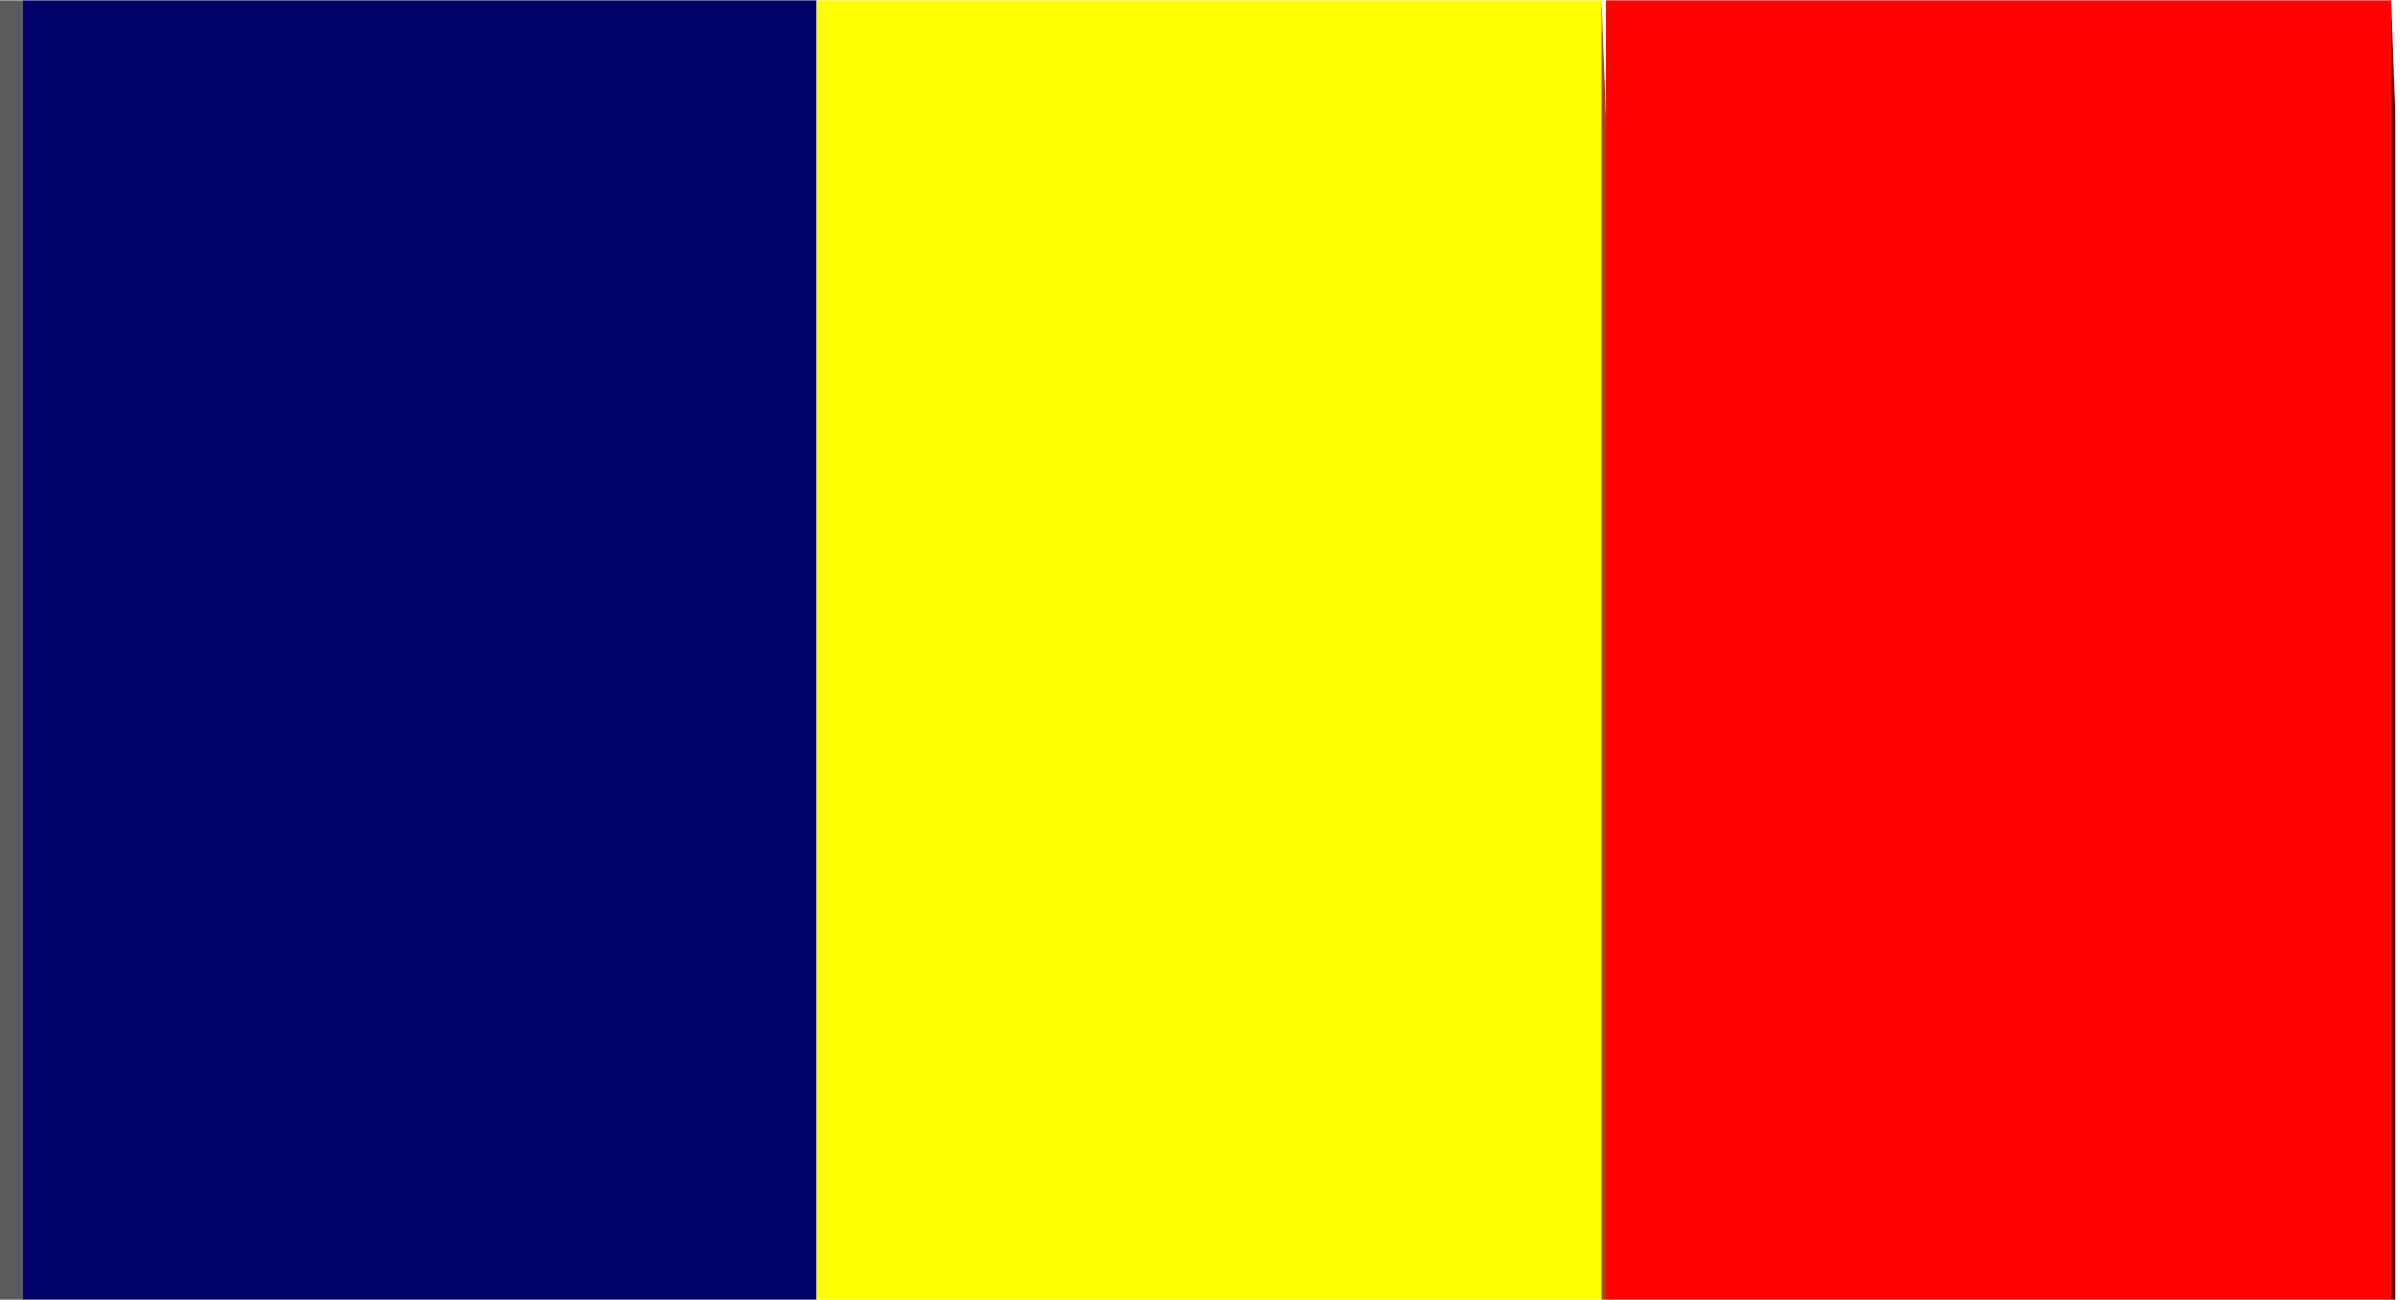 Flag of Chad by Joesph